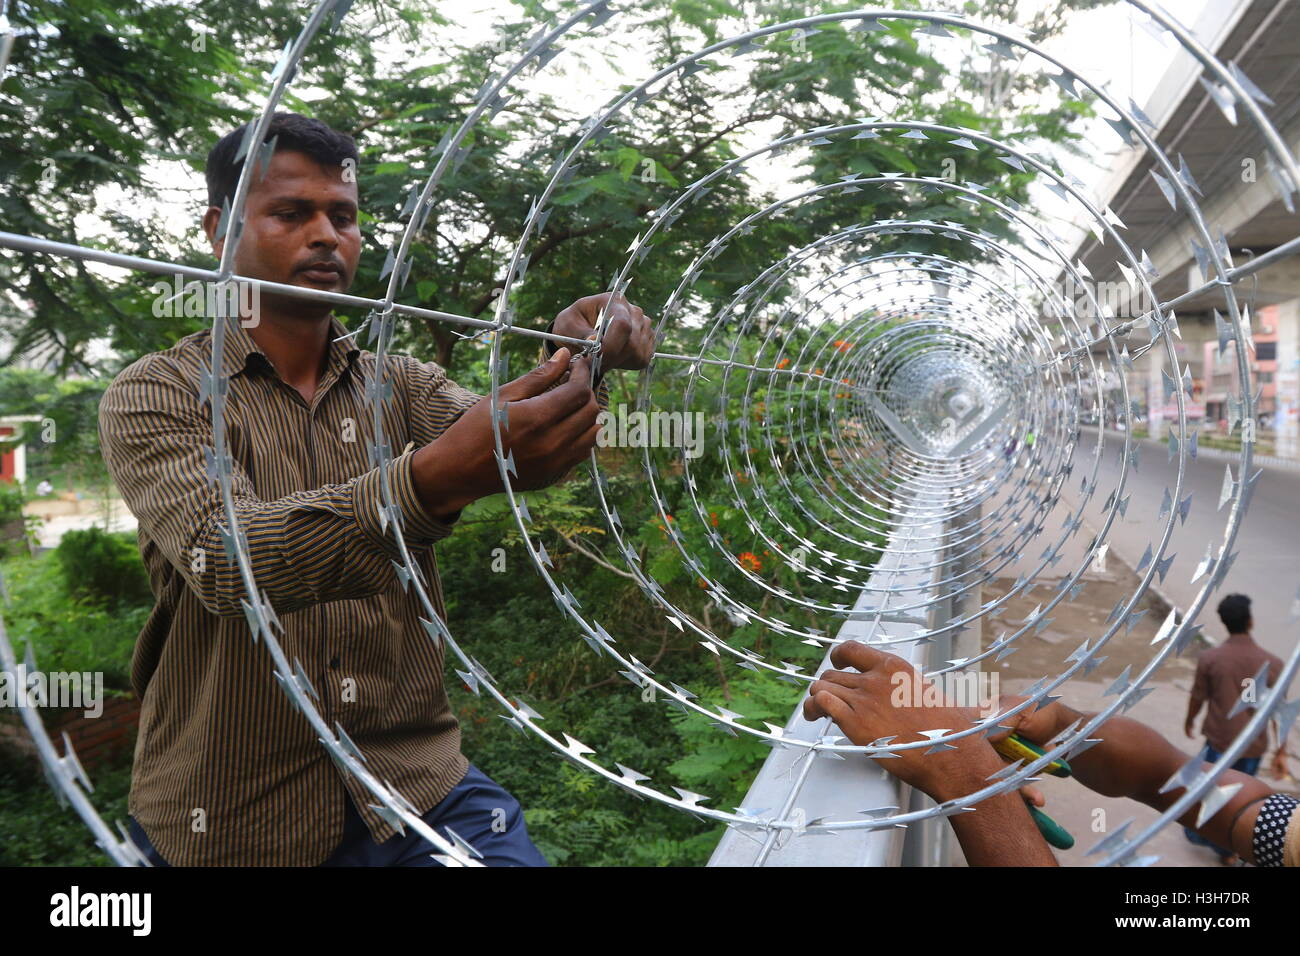 Secured with razor wire on top of the iron fence . - Stock Image